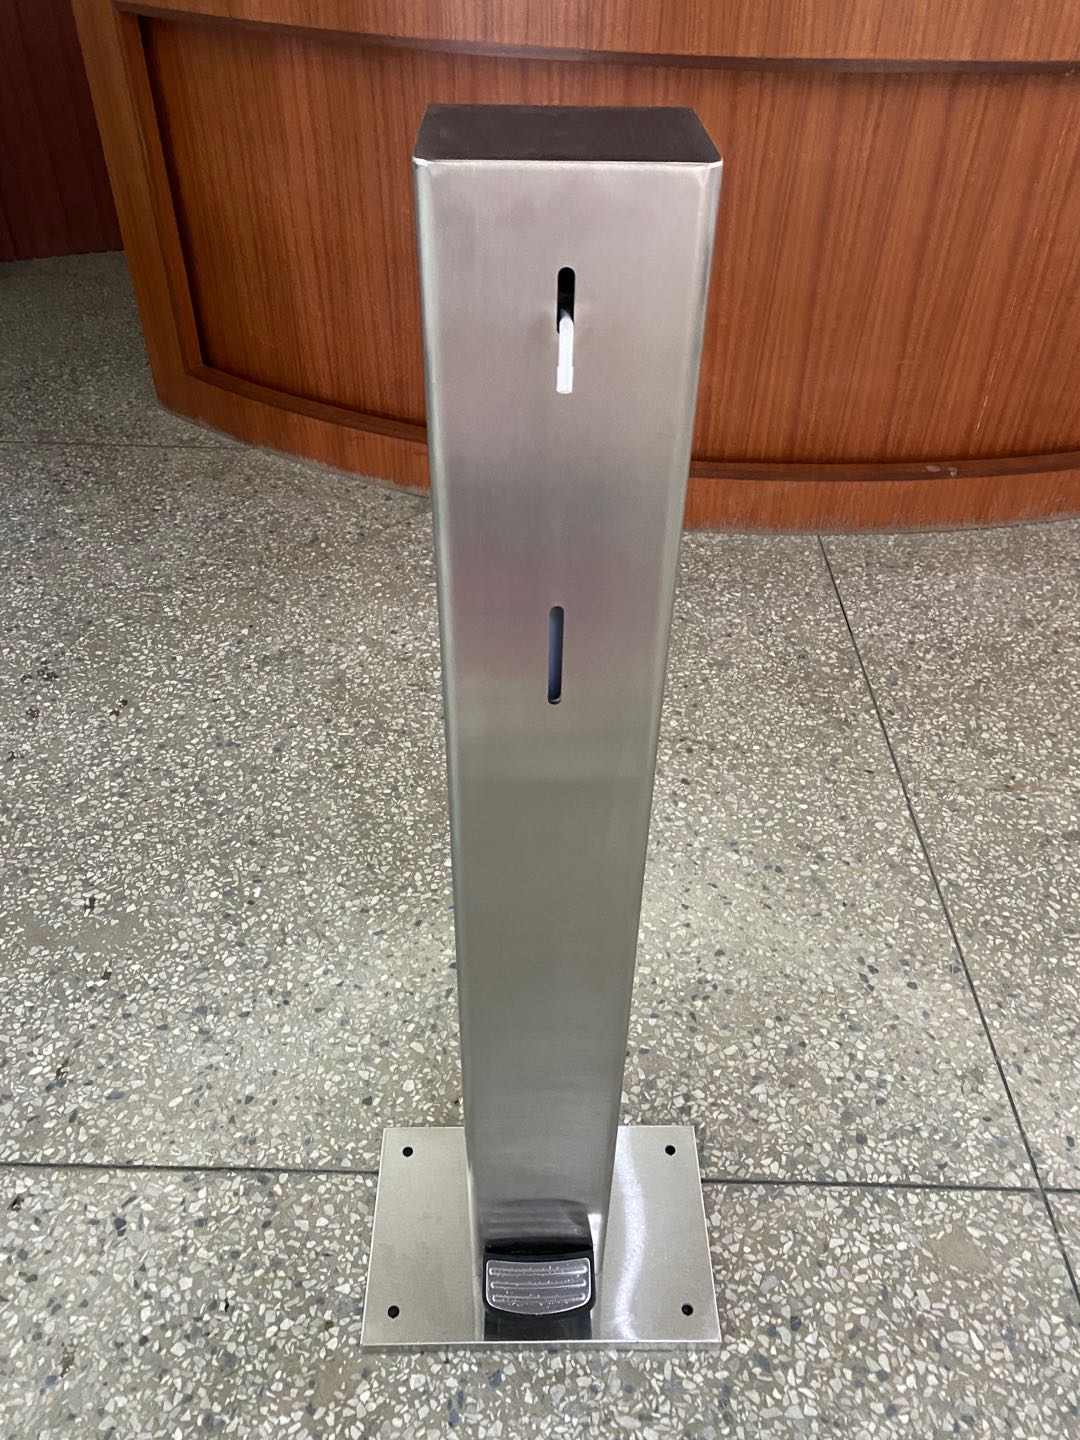 Touchless Hand Sanitizer Dispenser with Pedal Control